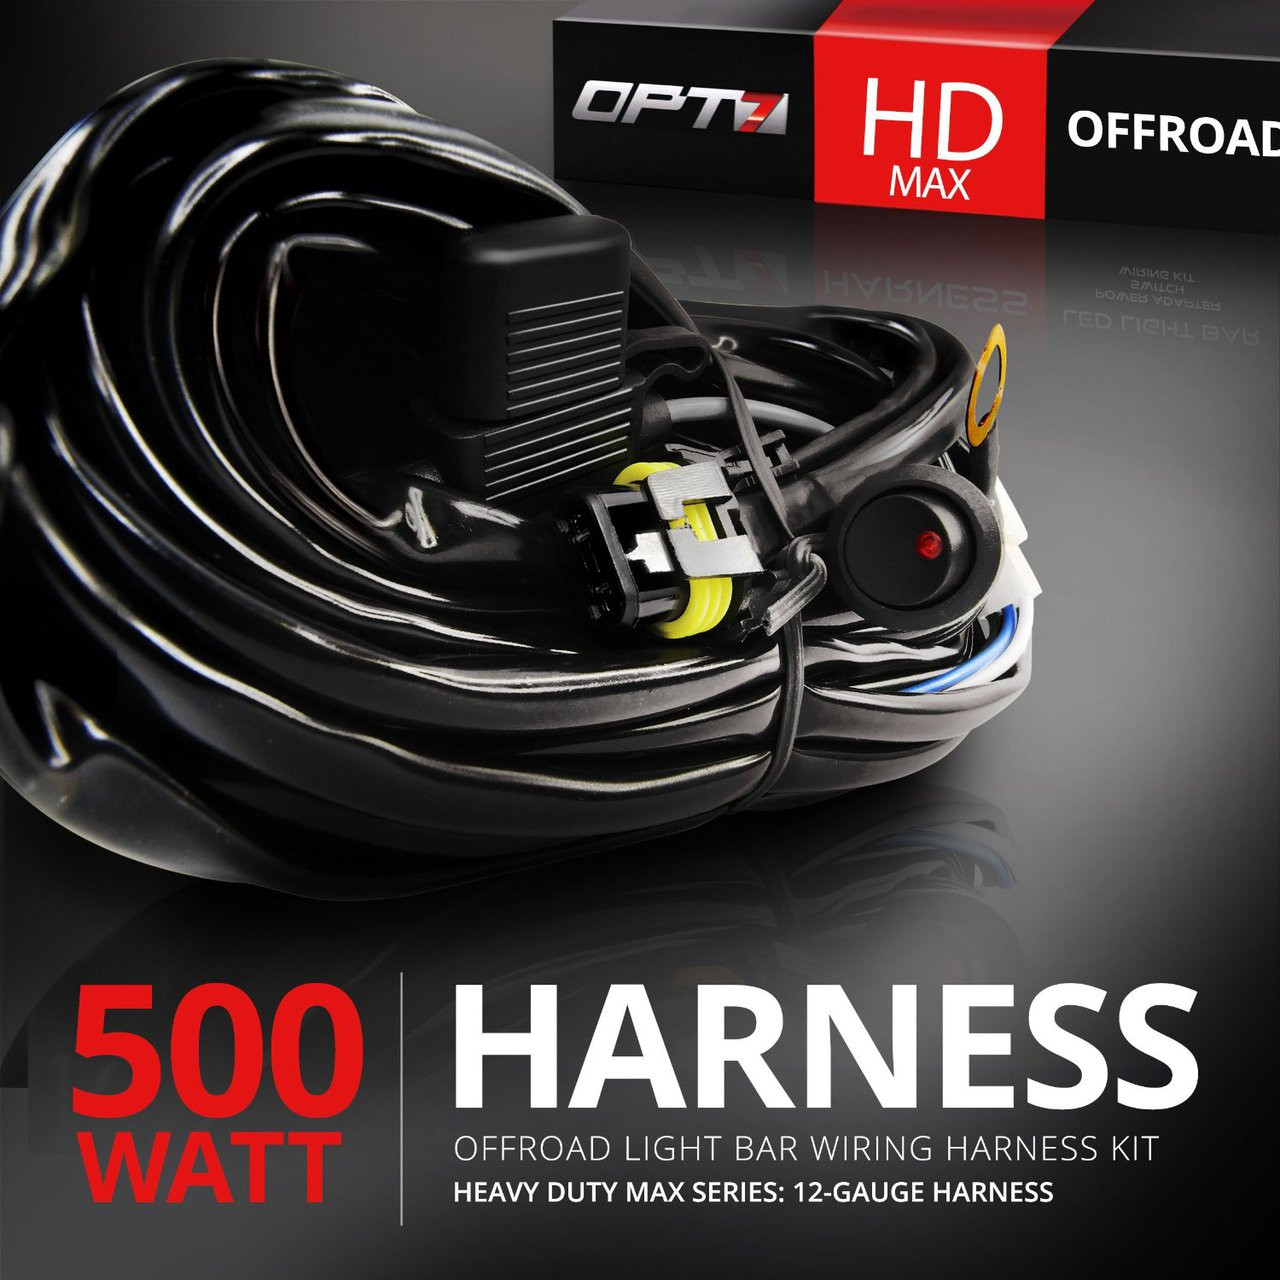 hd max led light bar wiring harness off road relay switch. Black Bedroom Furniture Sets. Home Design Ideas